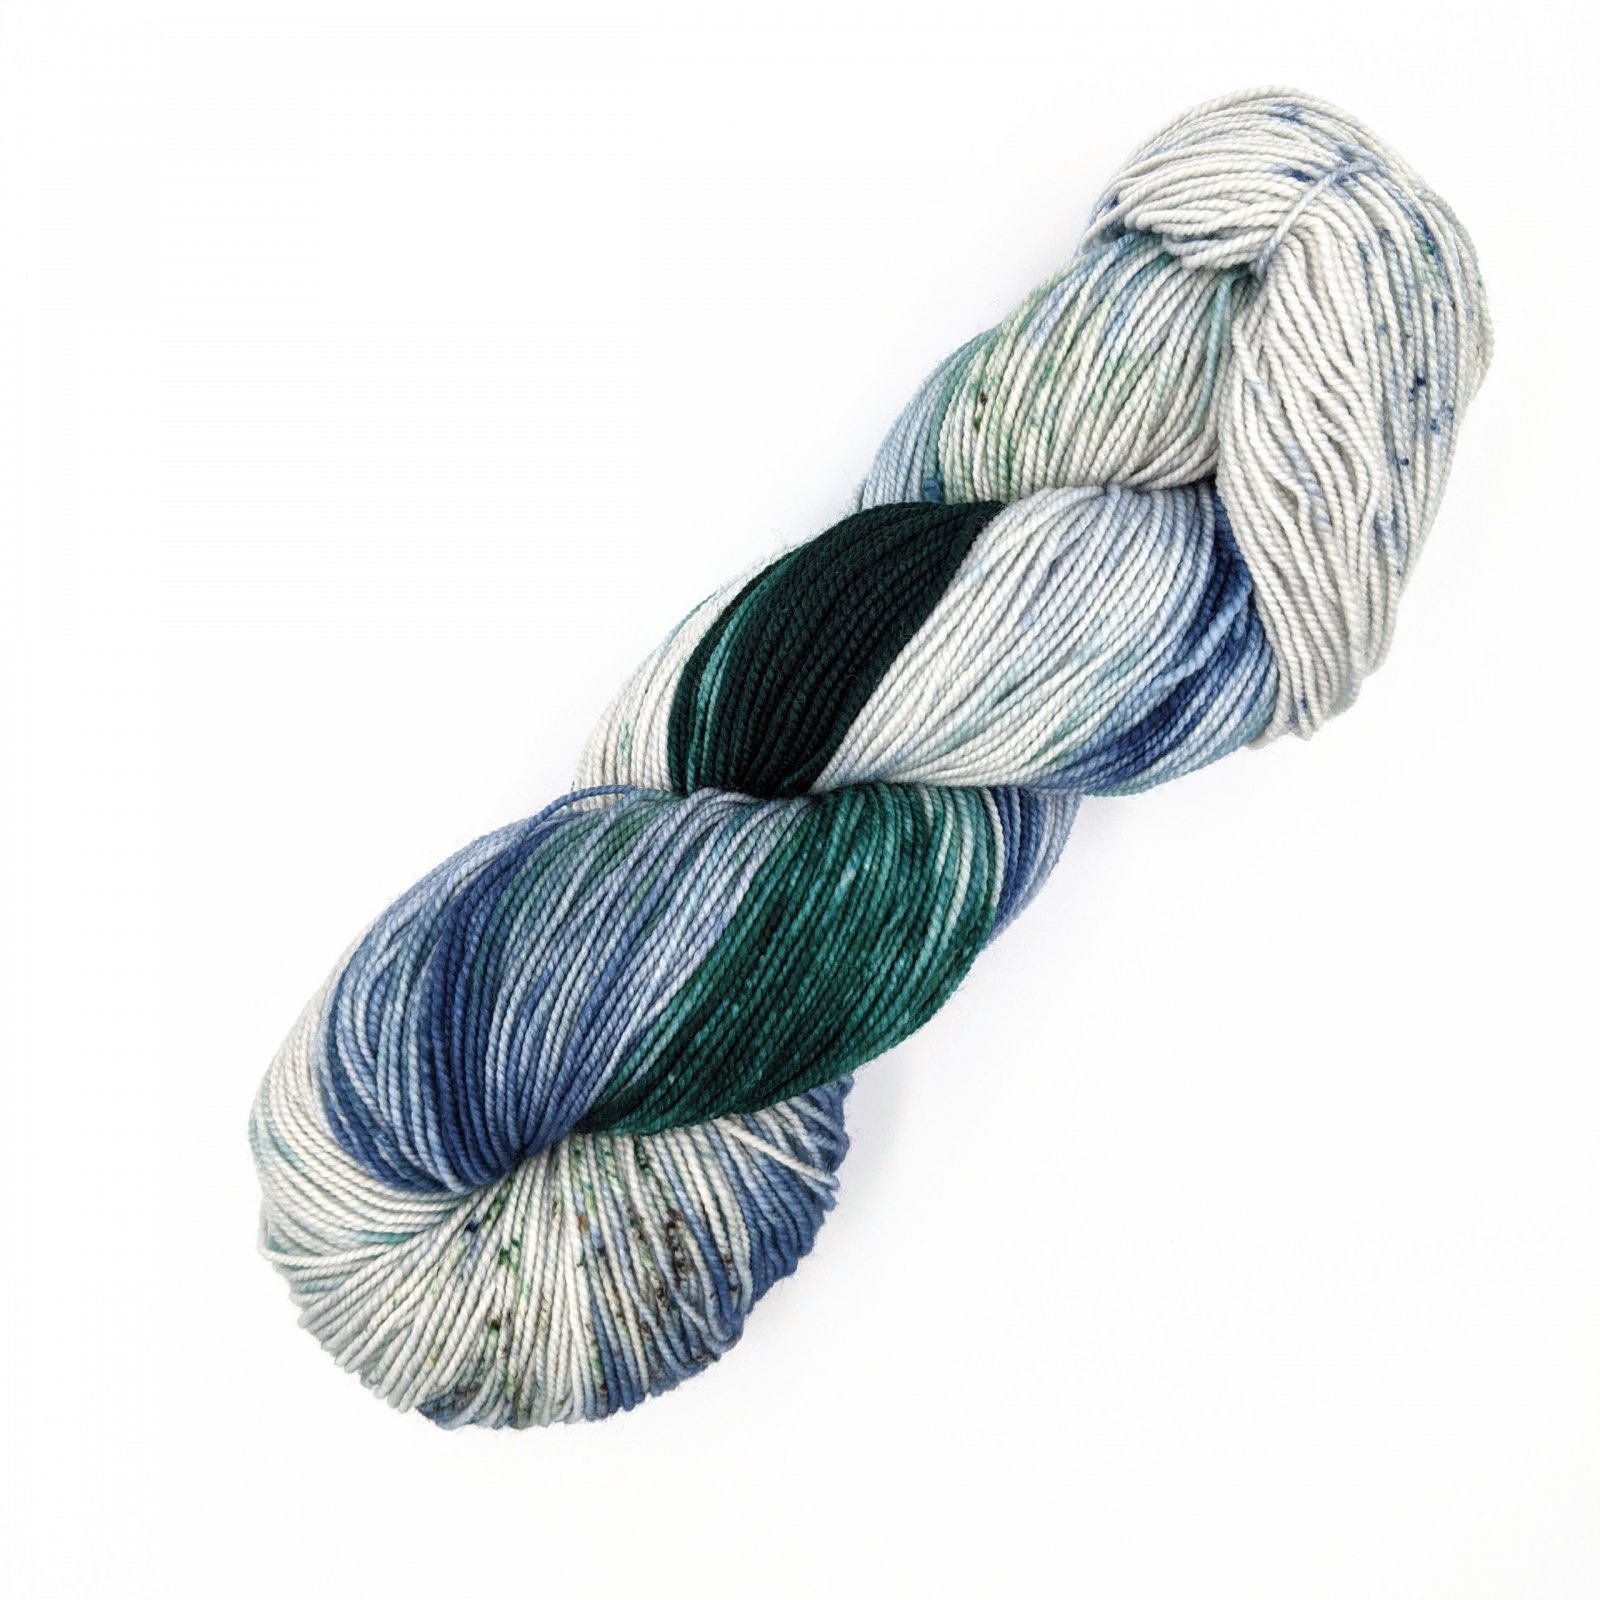 Fiber Seed CotM - Sprout Sock